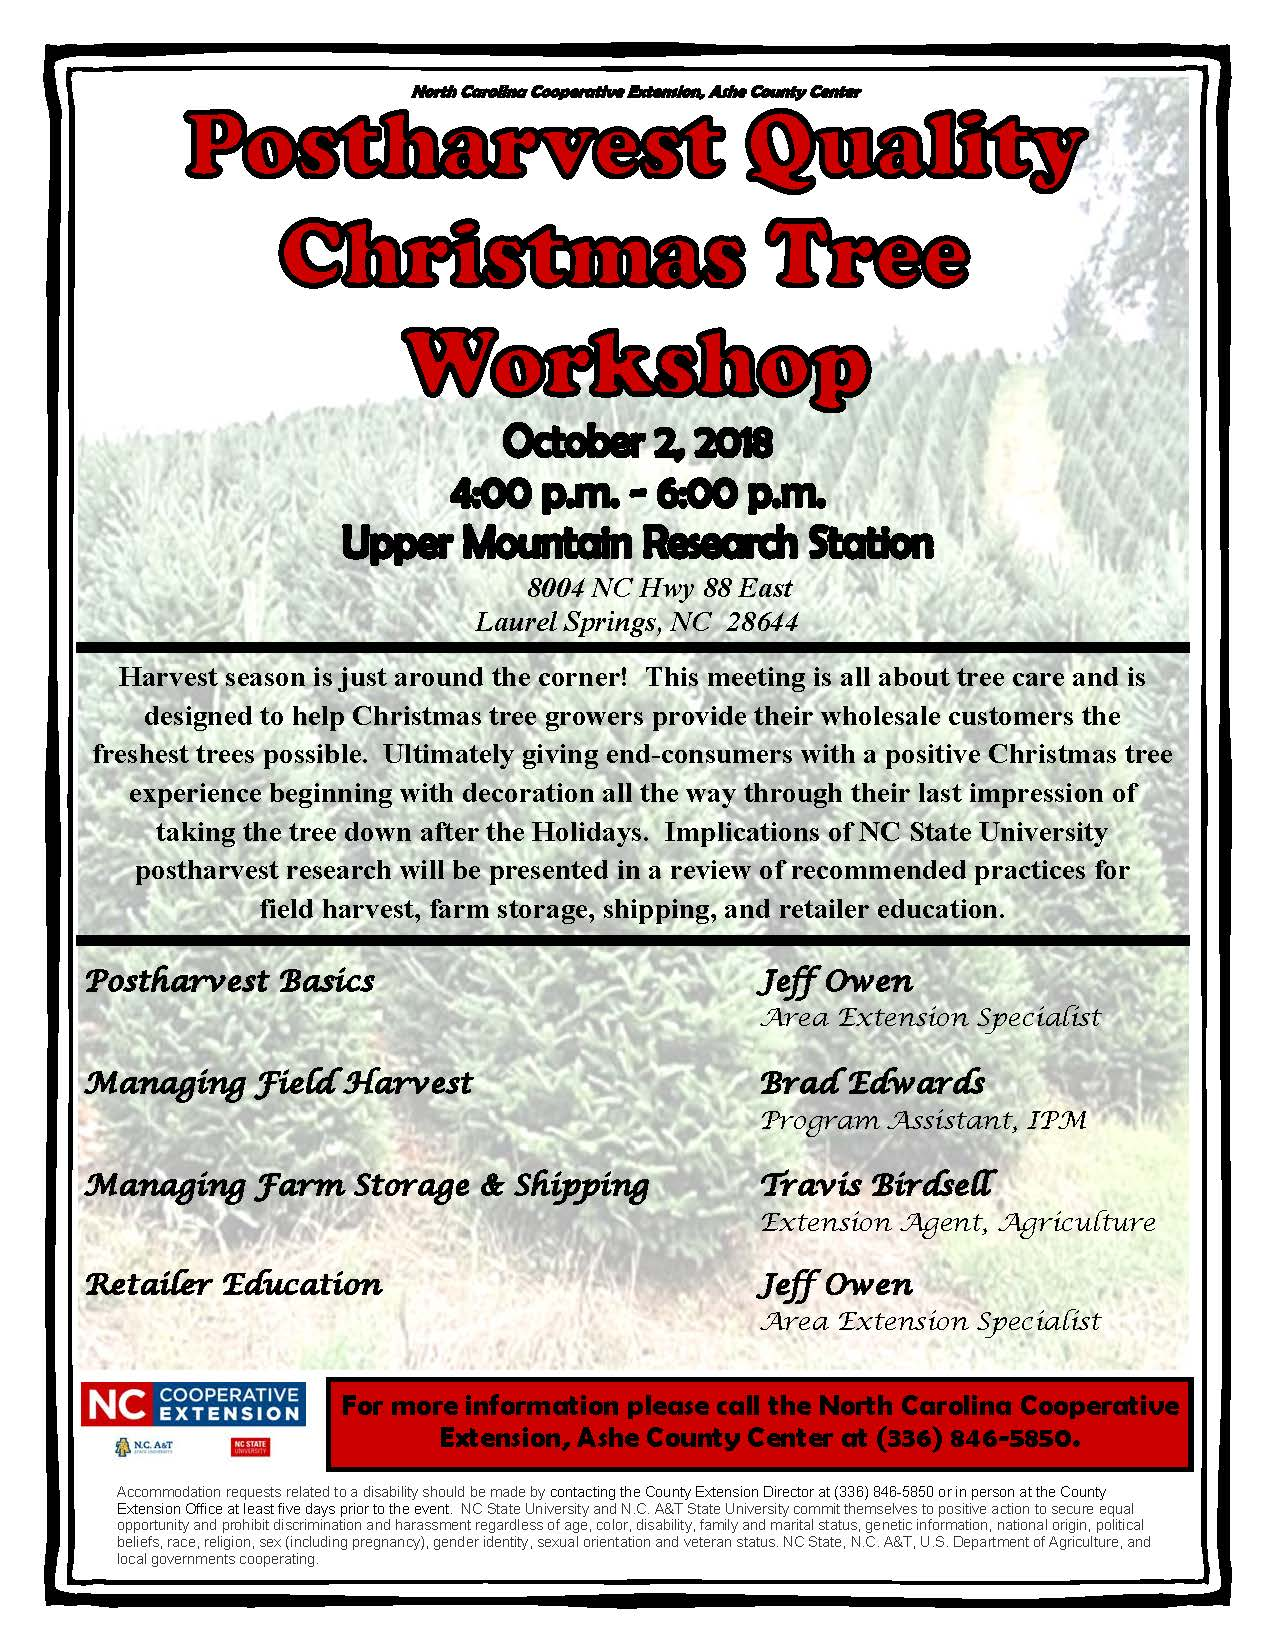 Postharvest Quality Christmas Tree Workshop flyer image